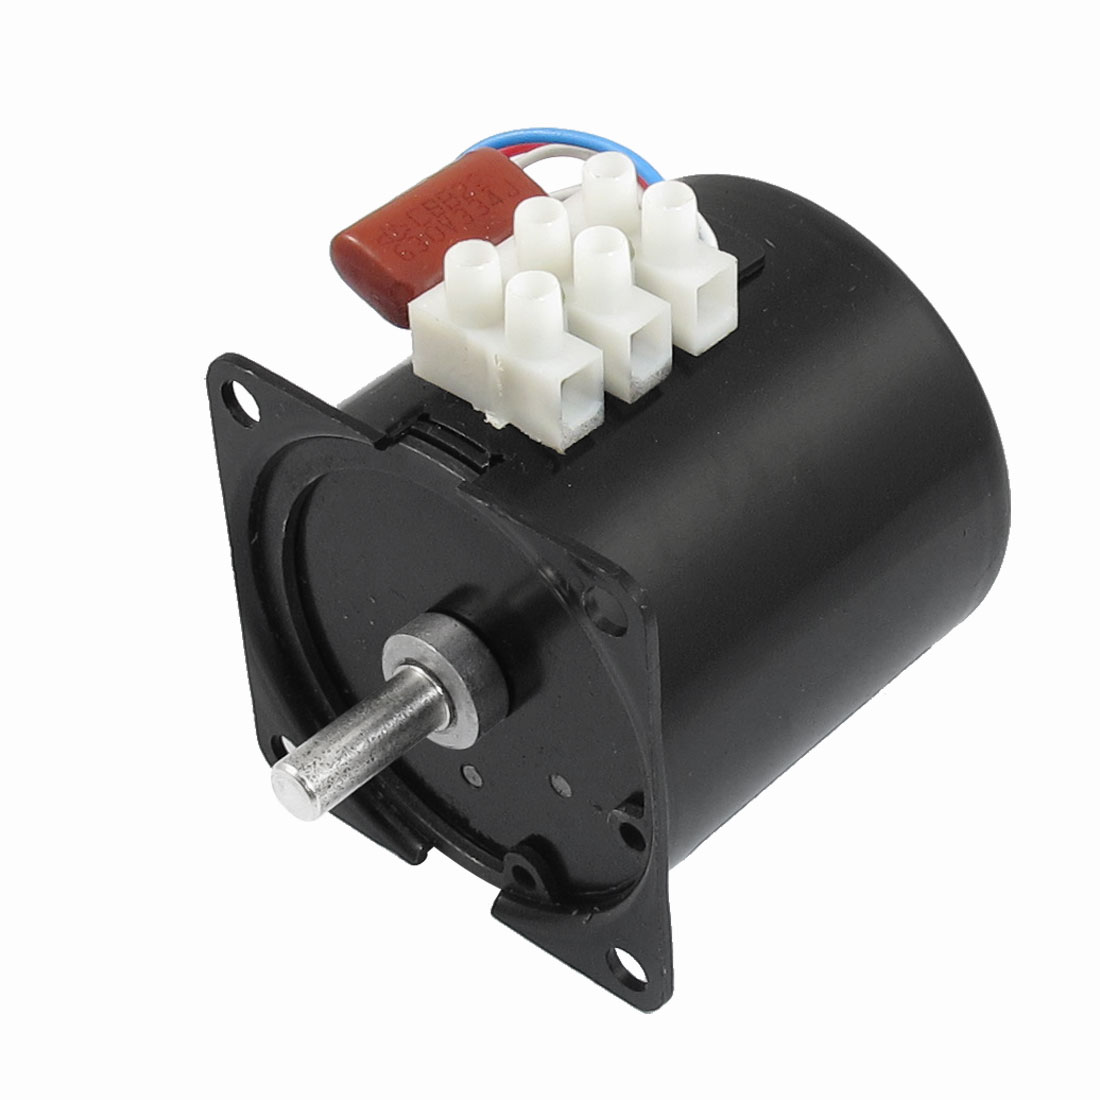 Output Speed AC 220V 0.07A 14W 5RPM Synchronous Reduction Gear Box Motor